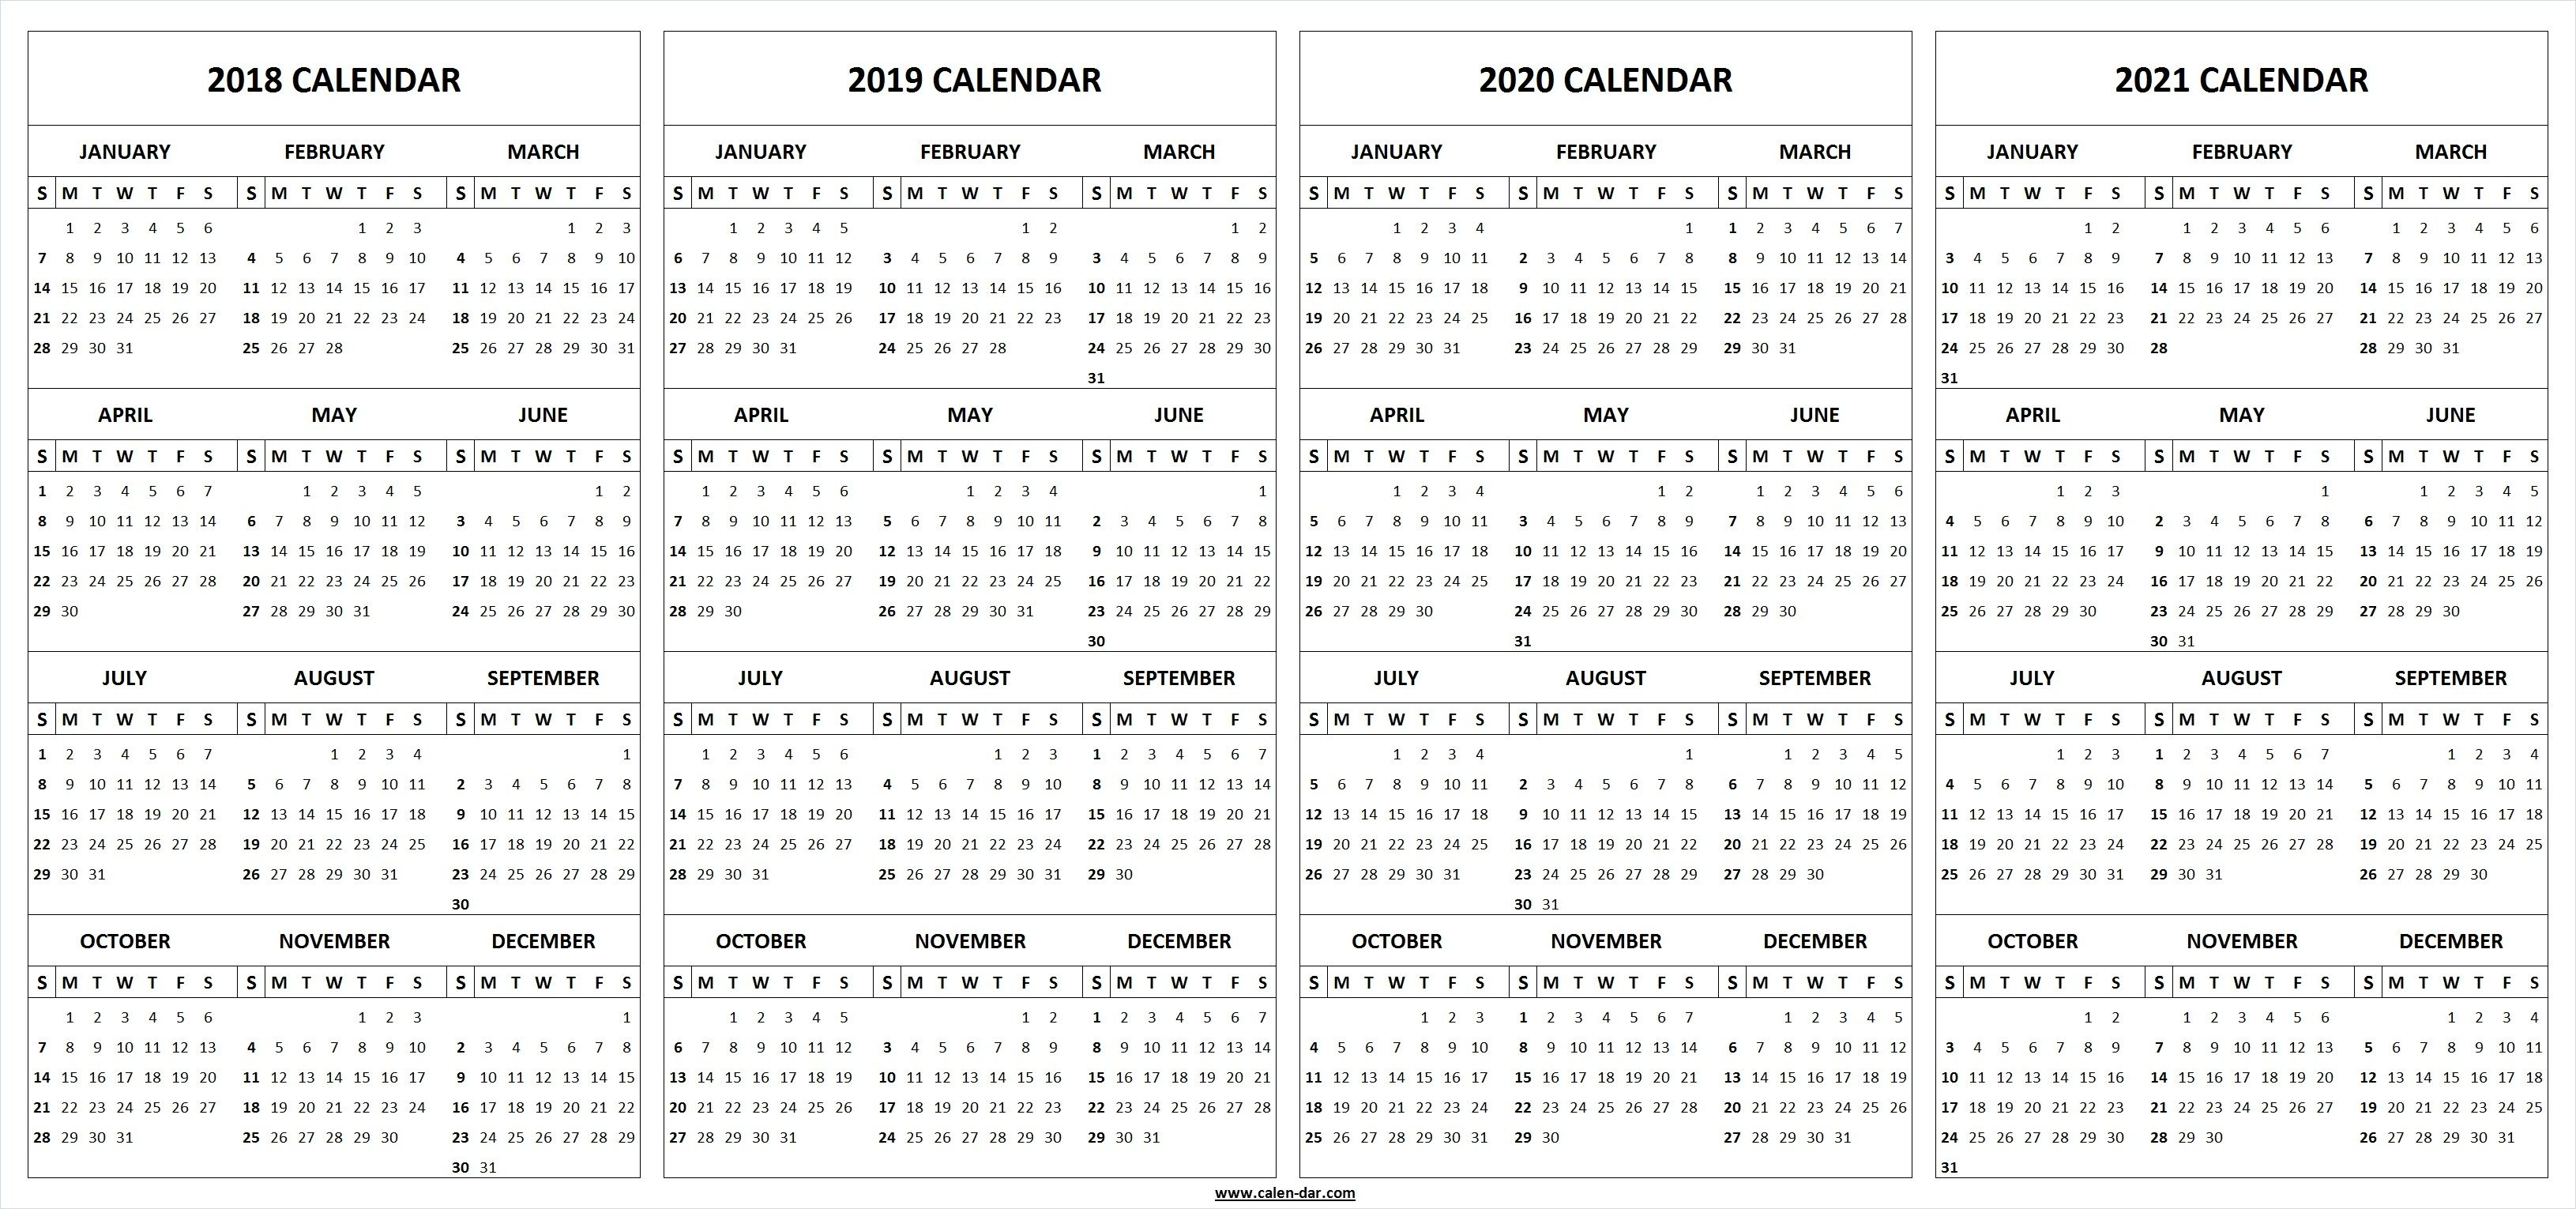 4 Four Year 2018 2019 2020 2021 Calendar Printable Template pertaining to Yearly Calendar 2019 2020 2021